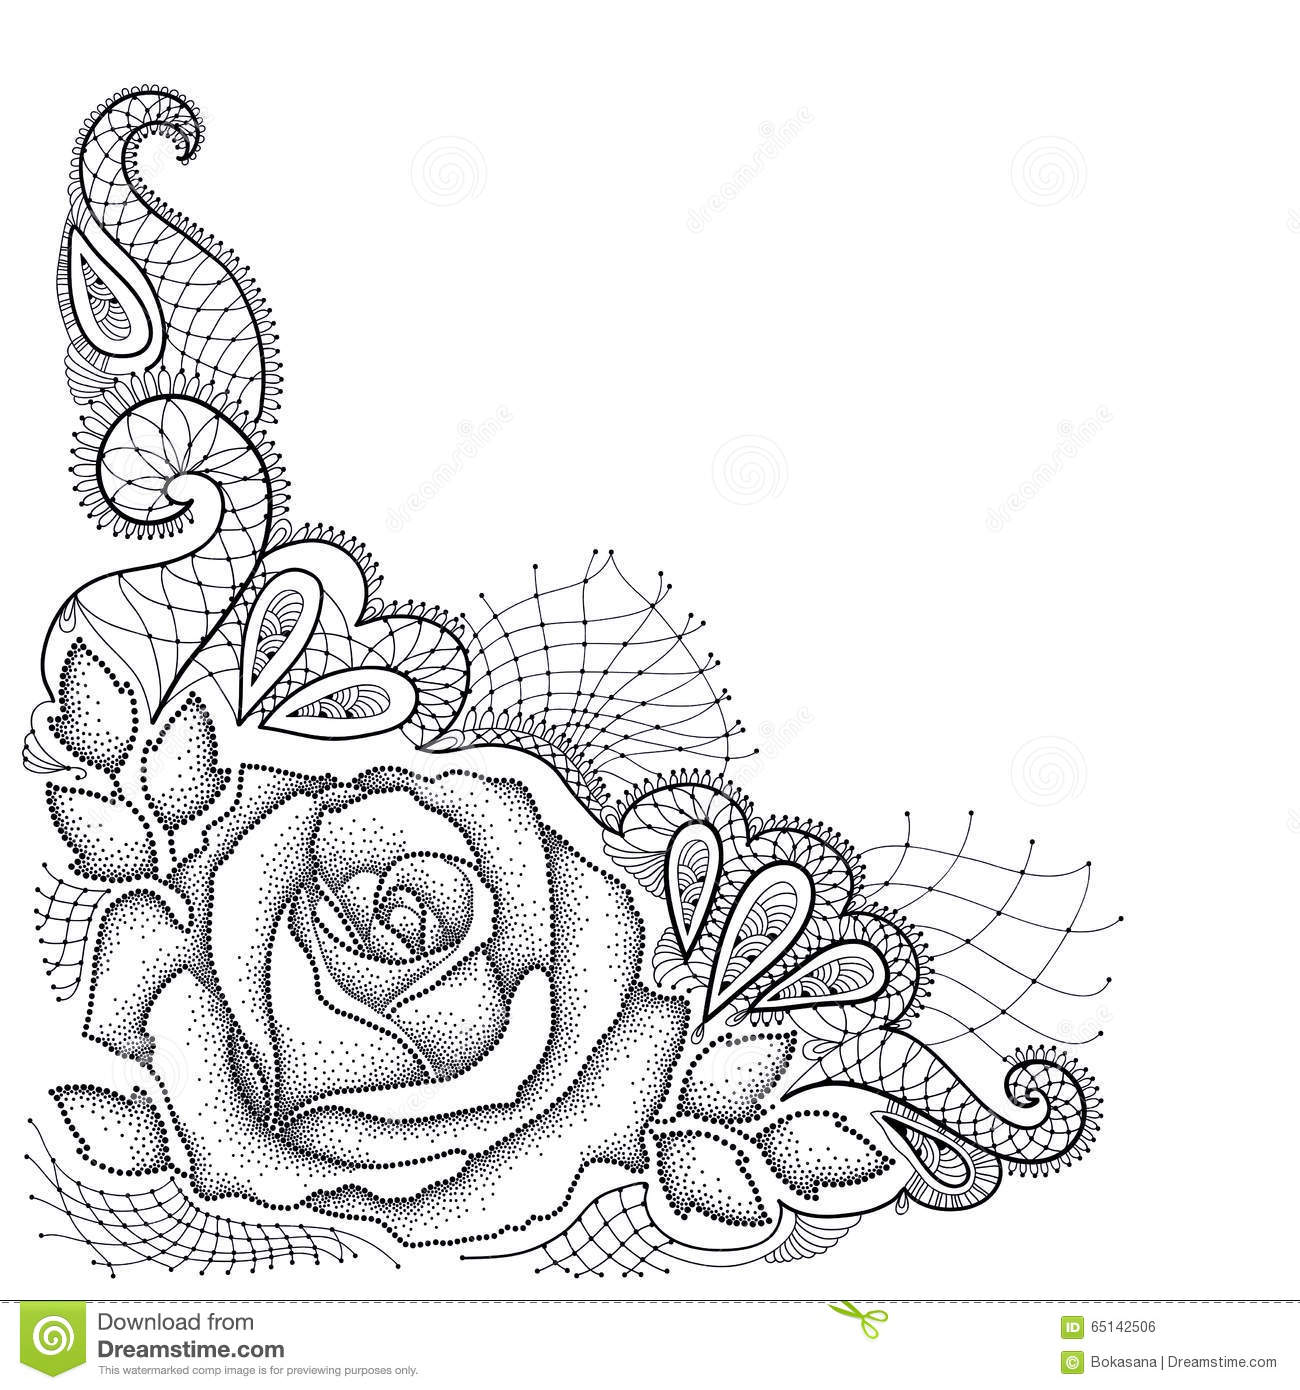 Black Flower Rose From Lace On White Background: Dotted Rose With Leaves And Decorative Lace In Black On